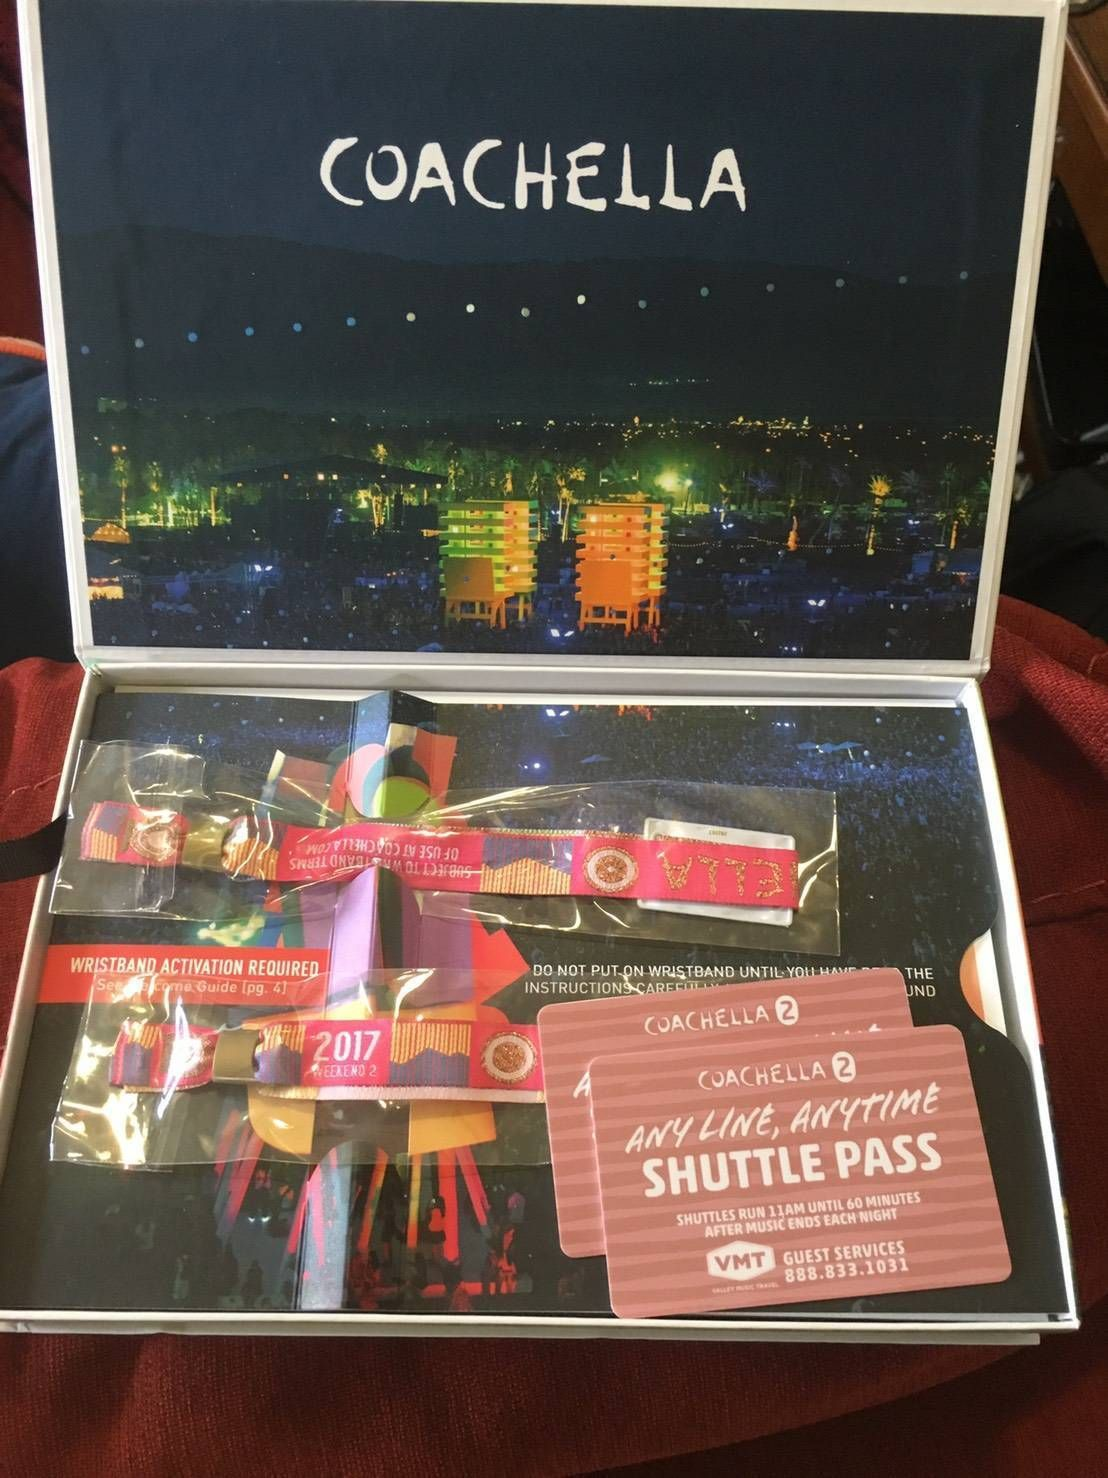 #concert - 2 GA Coachella 2017 wristbands for Weekend 2  2 shuttle passes https://t.co/hLXFG6rBaD https://t.co/F8a5jZSwEB